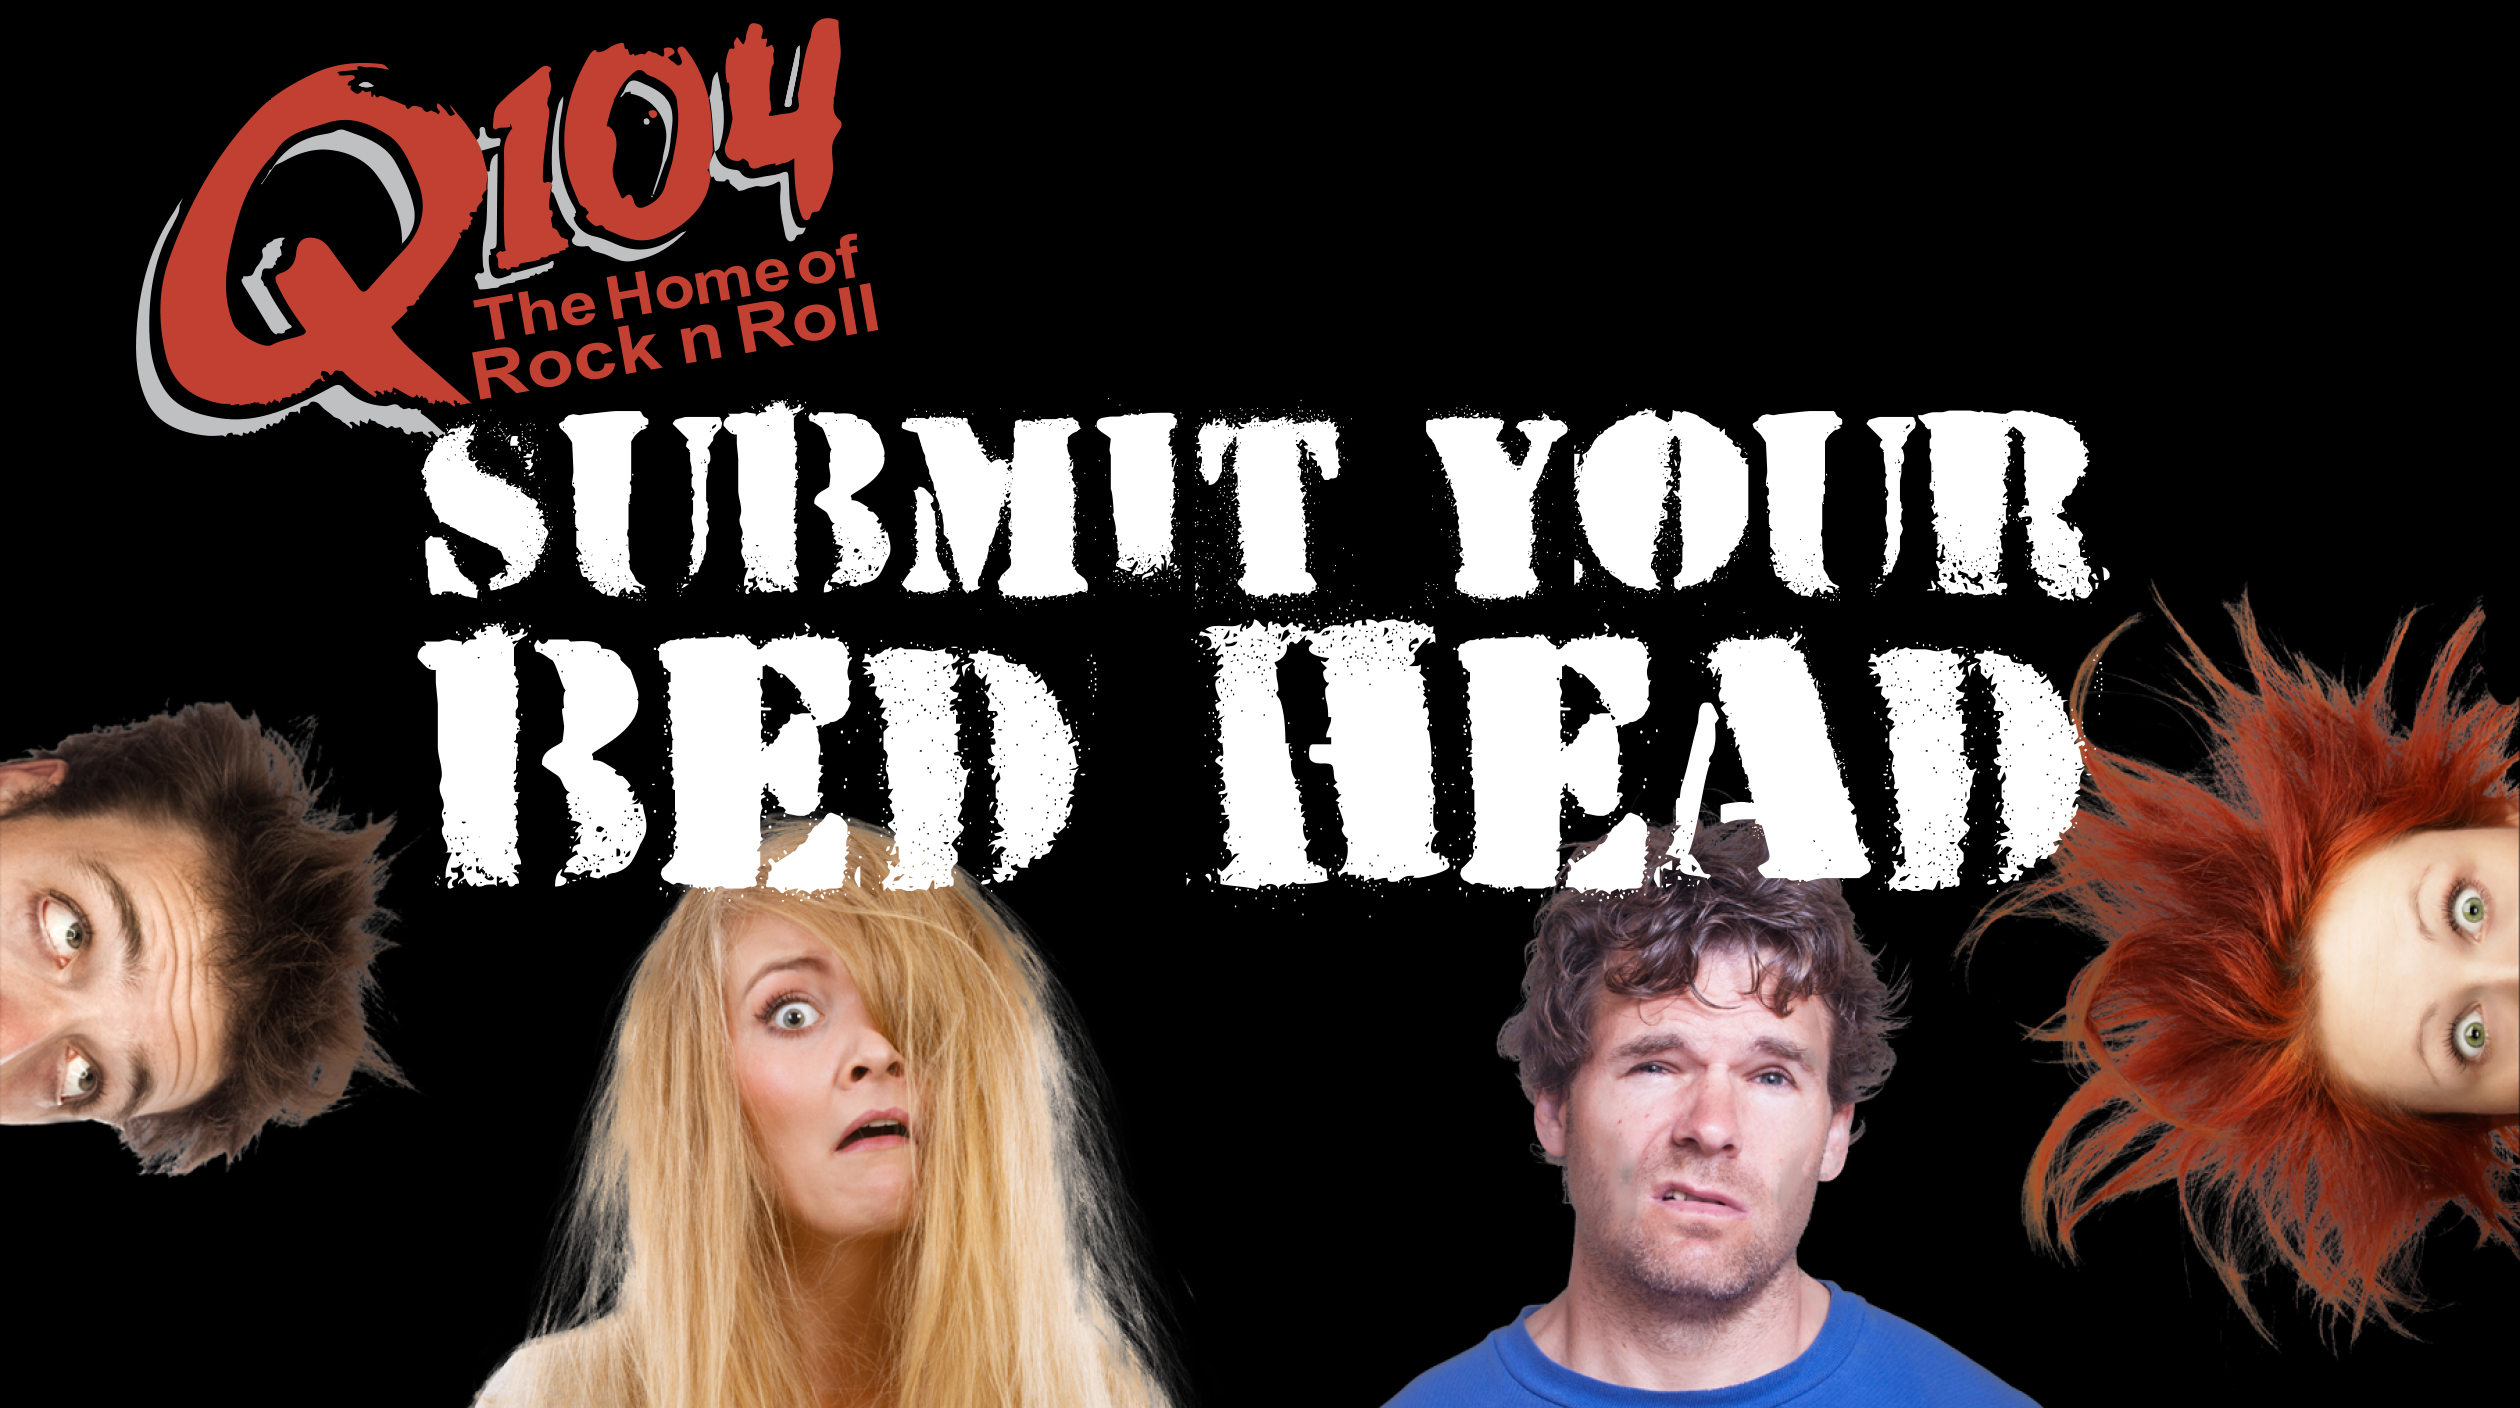 Feature: http://d803.cms.socastsrm.com/promo/q104-submit-your-bed-head/